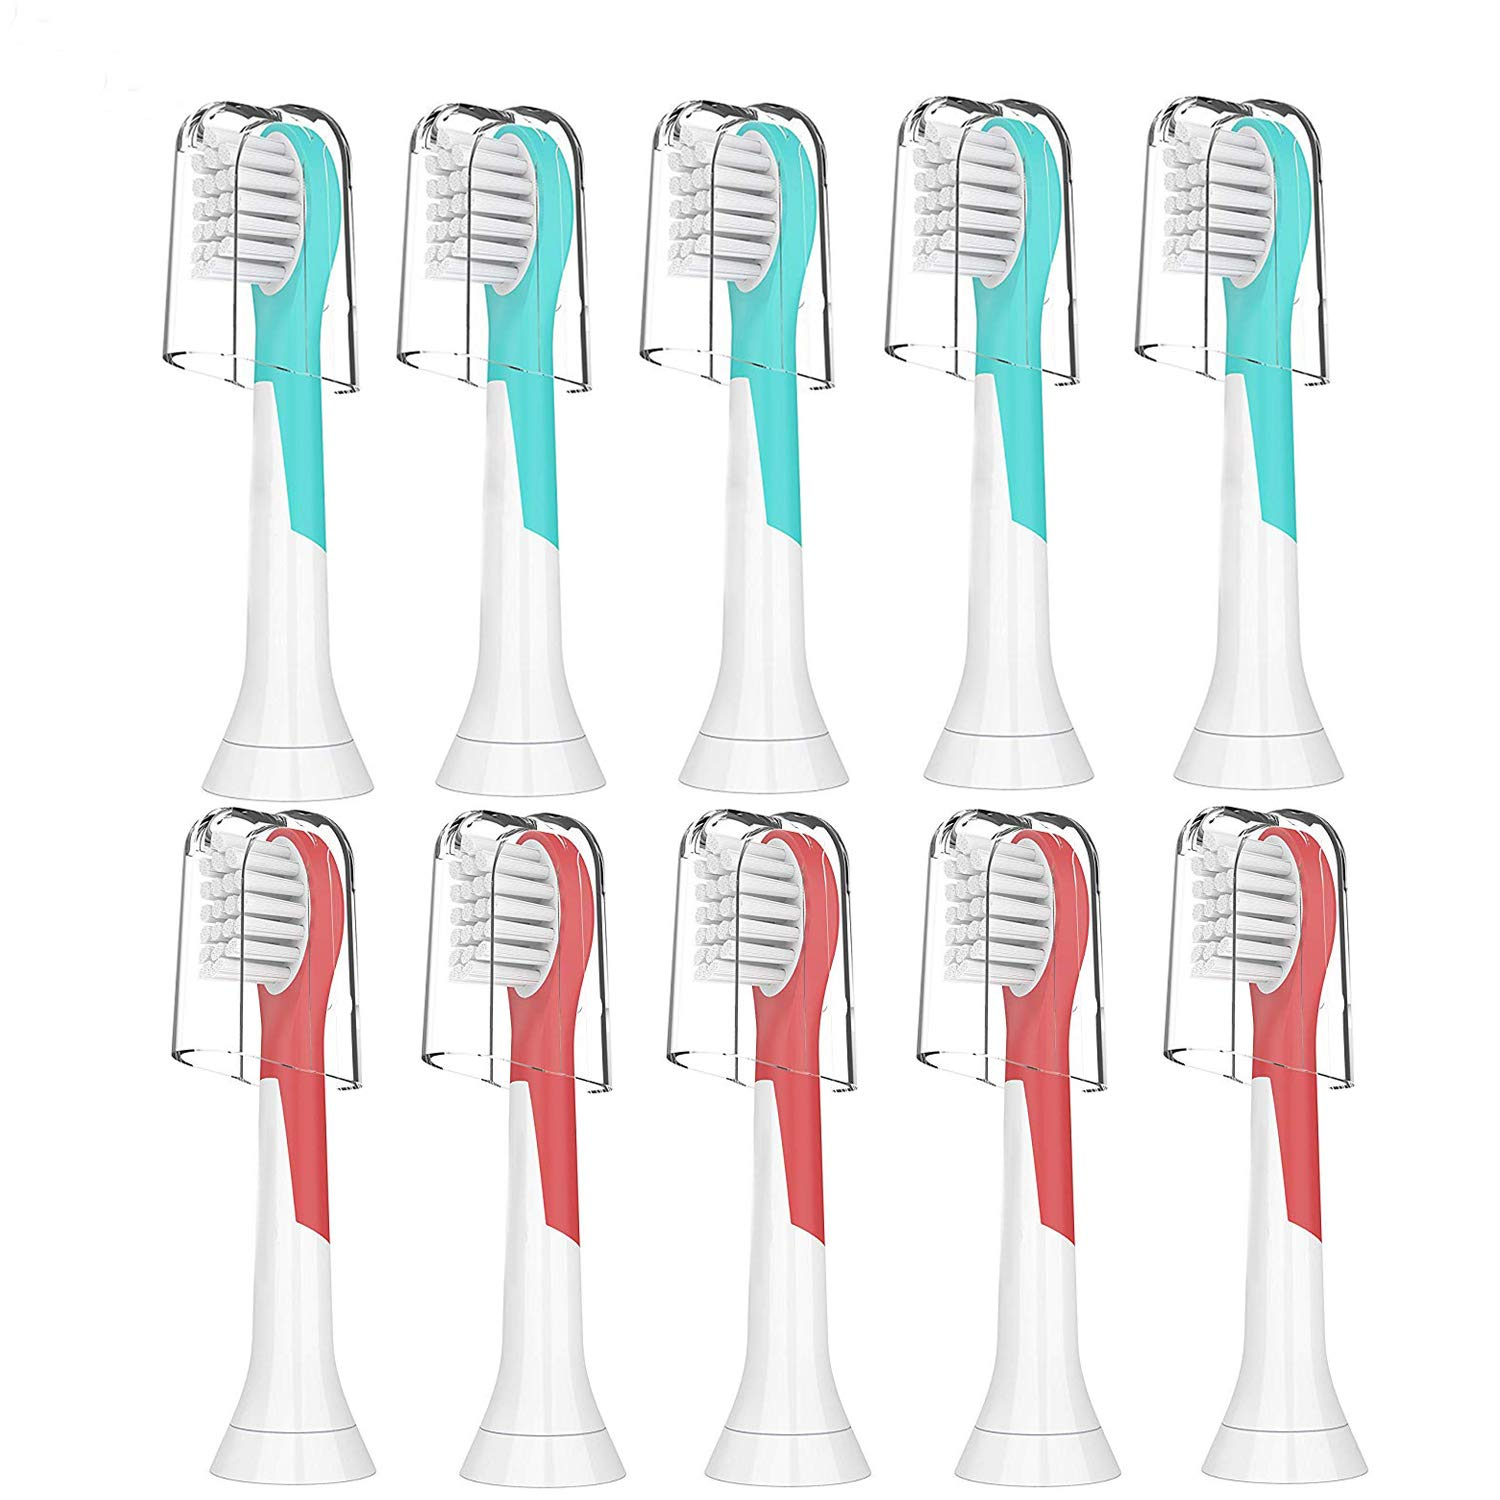 Kids Replacement Toothbrush Heads, Compatible with Philips Sonicare for Kids Toothbrush HX6032/94,HX6320,HX6340,HX6321,HX6330,HX6331,10 pack Compact Sonic Care Toothbrush Heads for Kids 3-7 Years Old